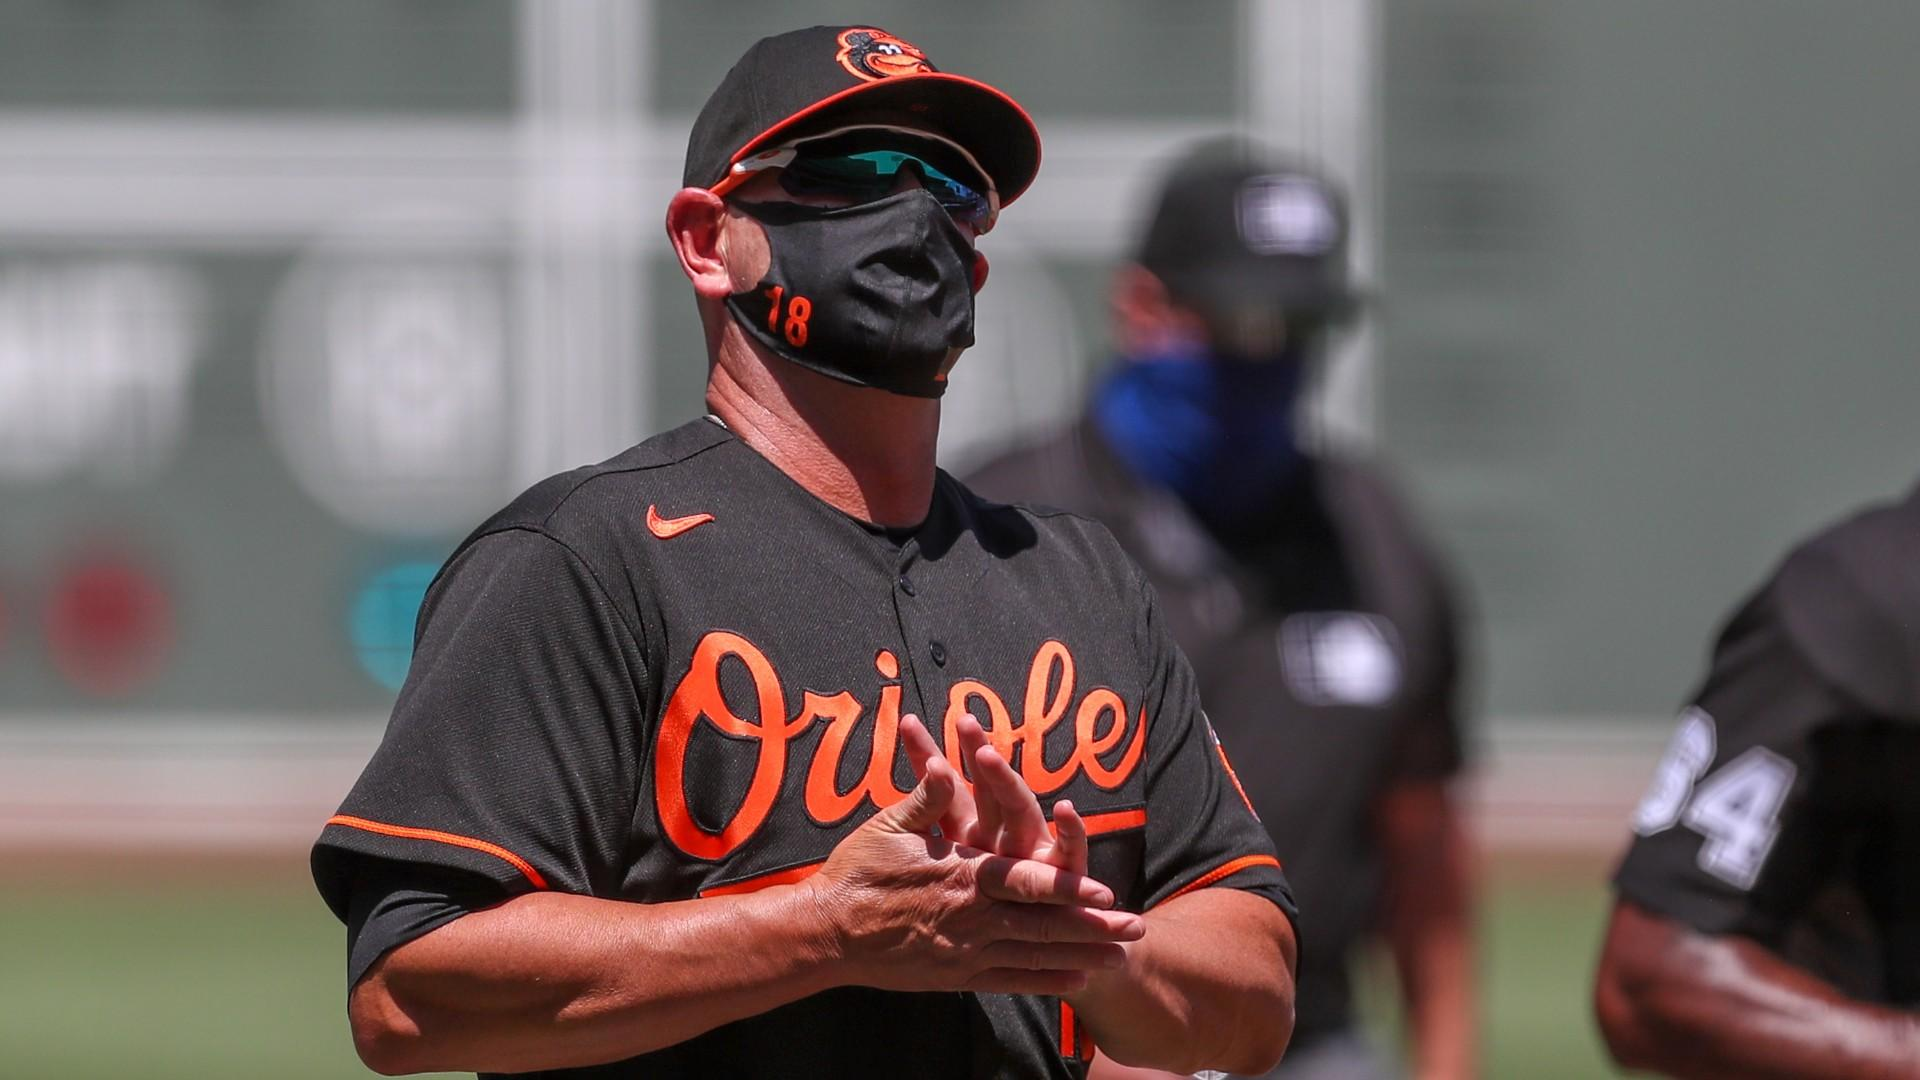 Orioles manager Brandon Hyde admits it is very unusual to prepare for the Marlins after coronavirus outbreak